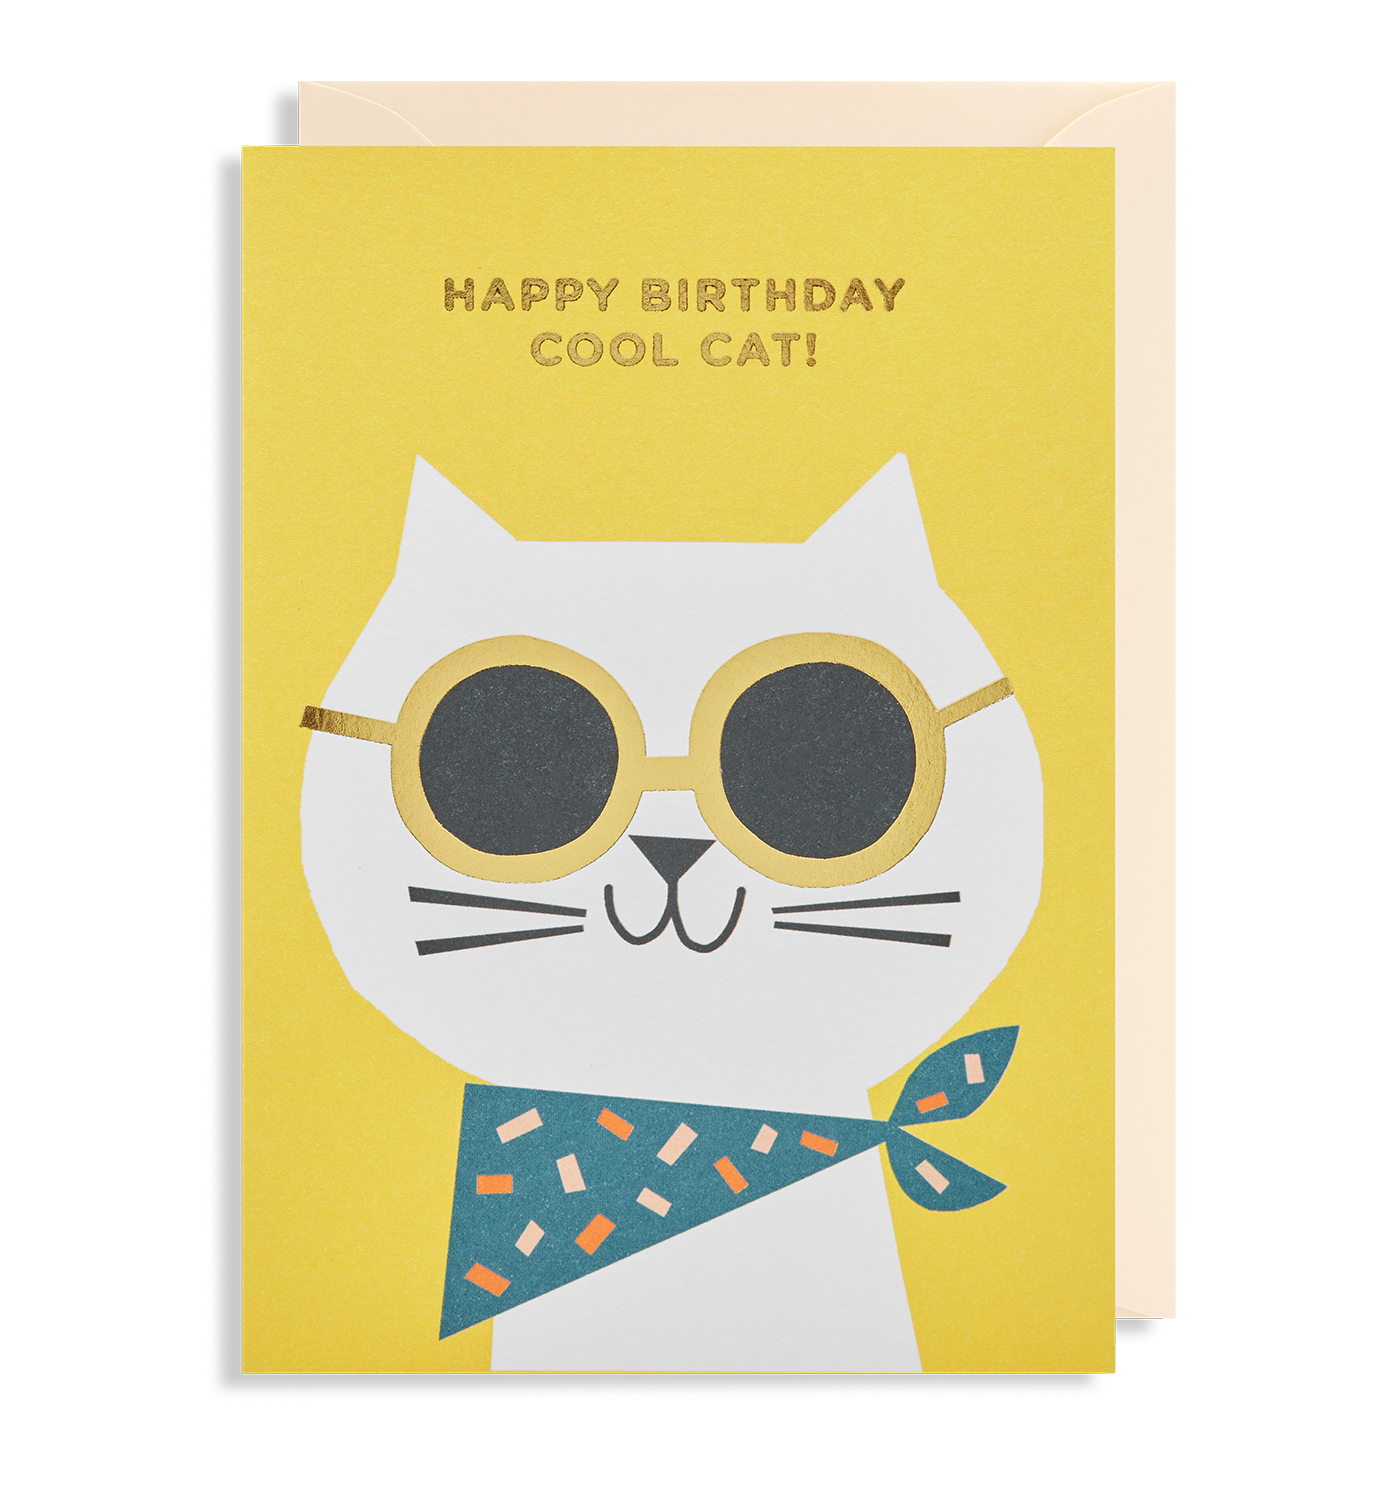 Happy Birthday Cool Cat Greeting Card By Ekaterina Trukhan Lagom